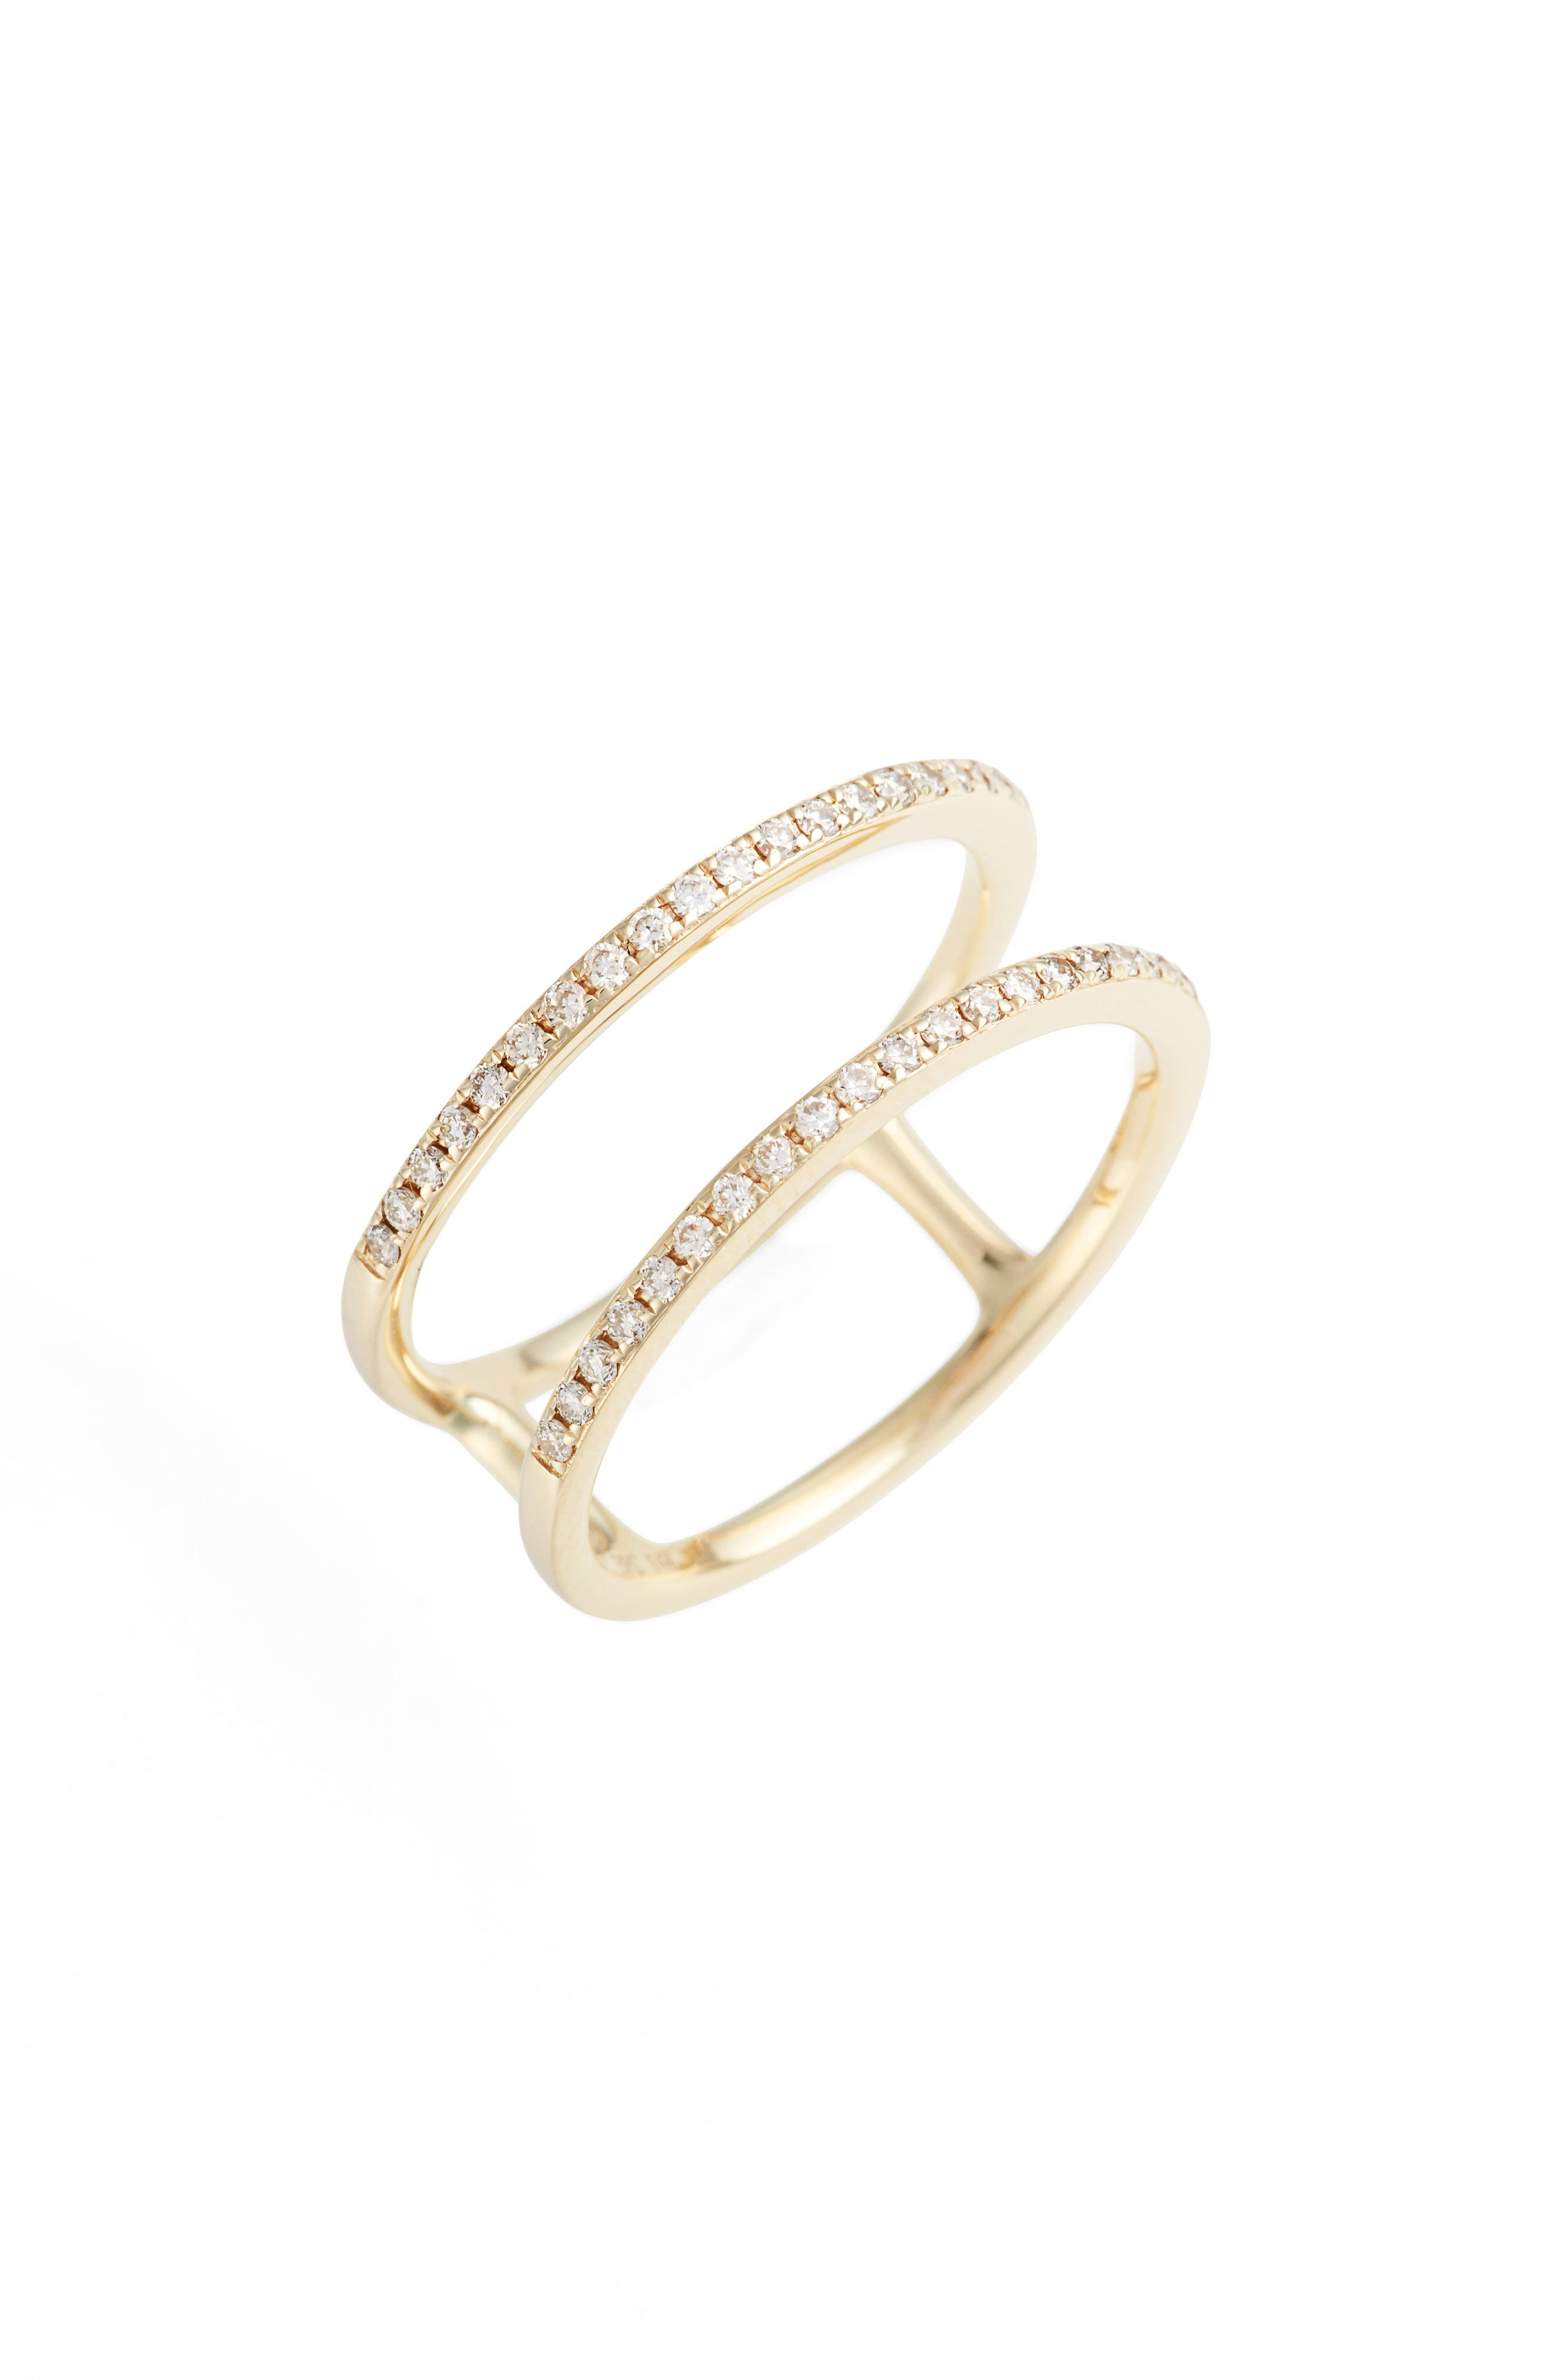 Double Row Diamond Ring,                         Main,                         color, YELLOW GOLD